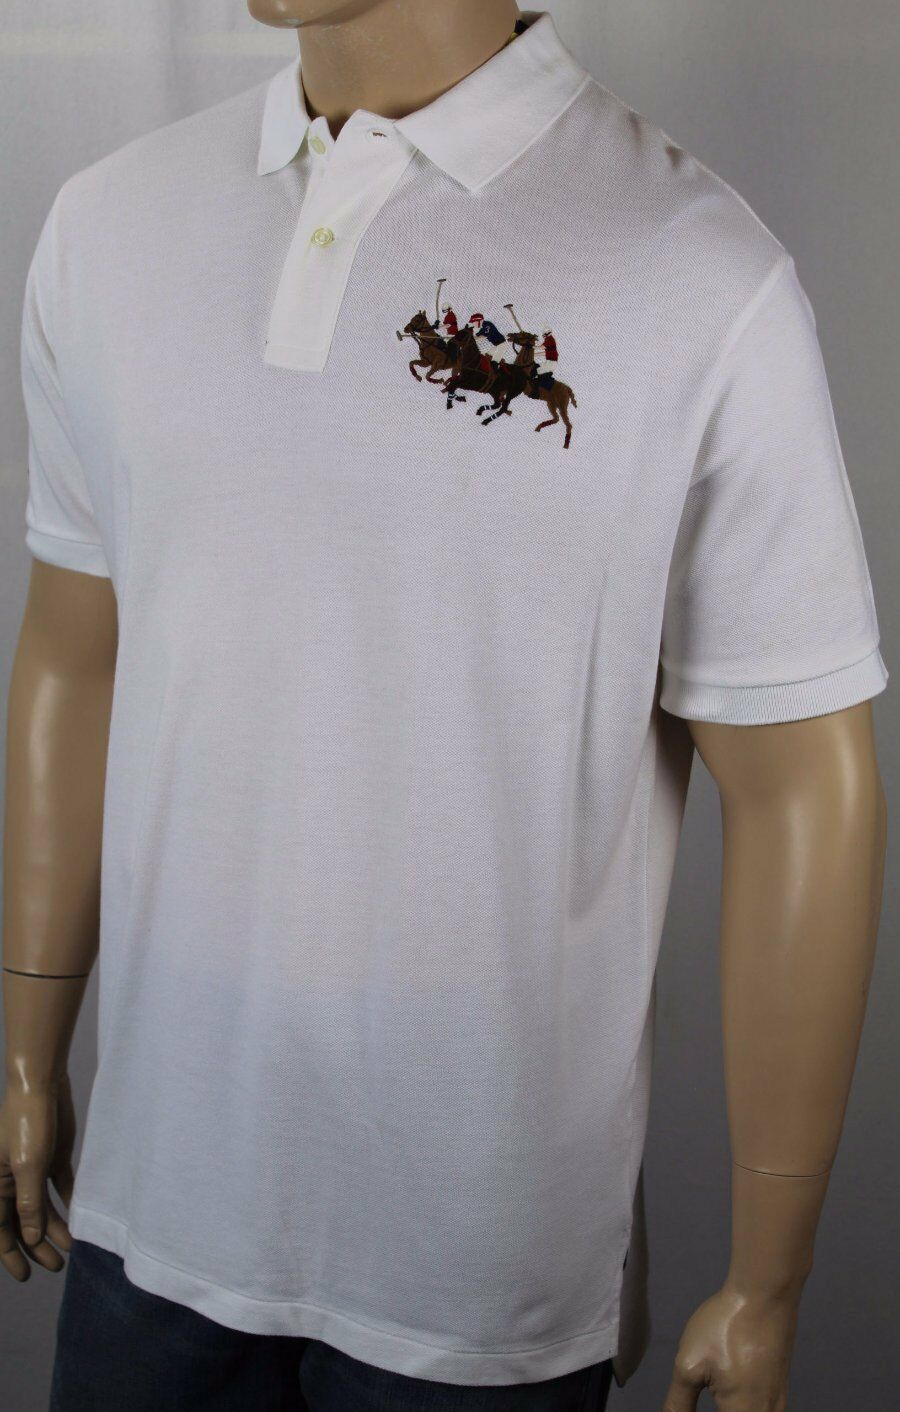 Polo Ralph Lauren White Classic Fit Mesh Shirt Big Pony Match NWT